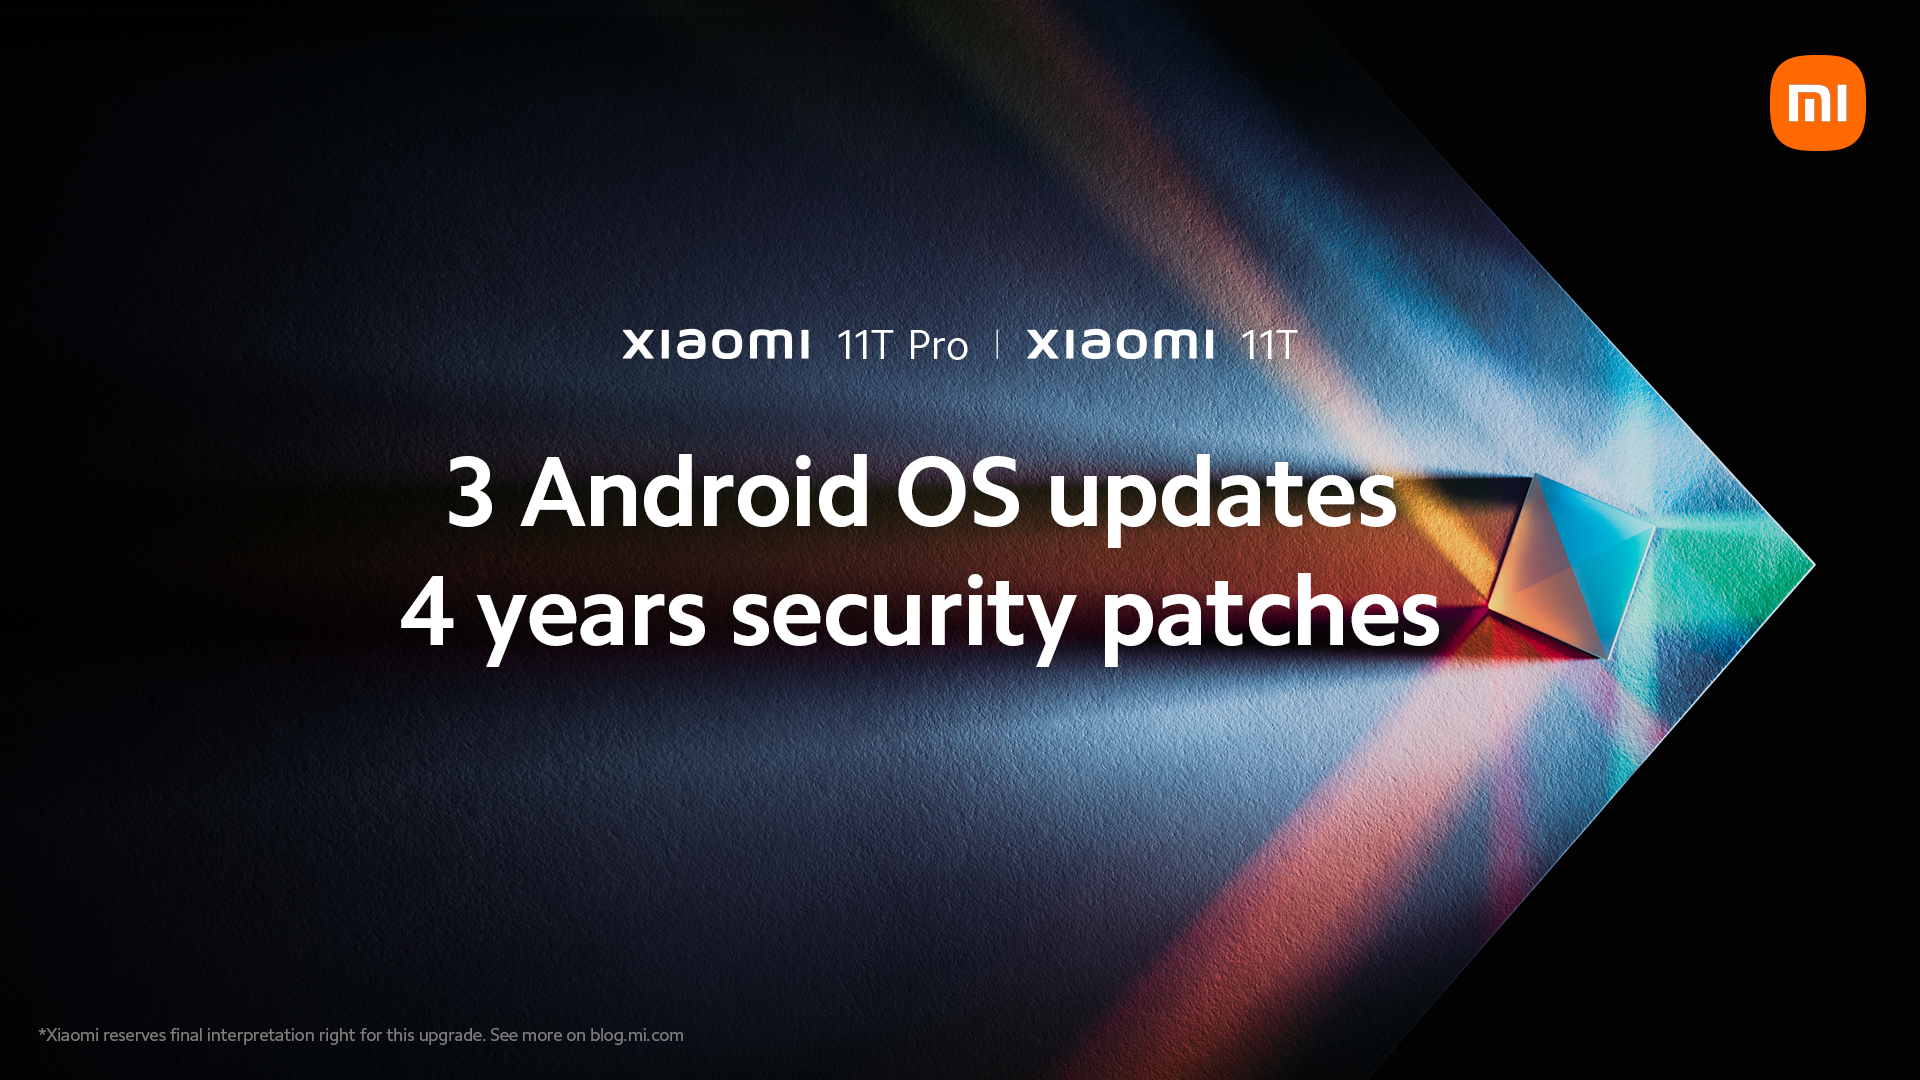 Xiaomi 11T series to get 3 Android OS upgrades, 4 years of security patches